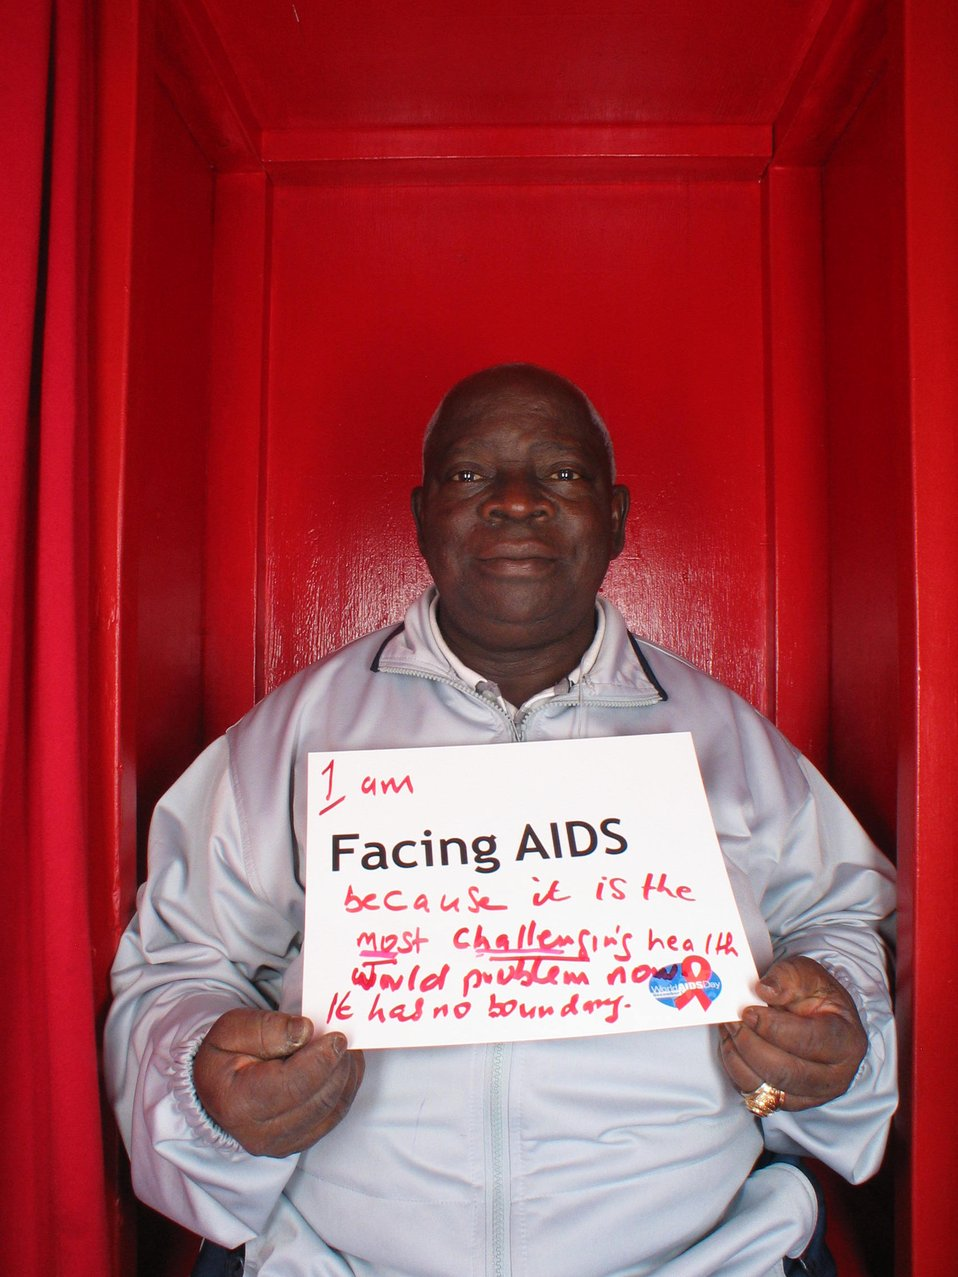 I am Facing AIDS because it is the most challenging health world problem now and has no boundary.